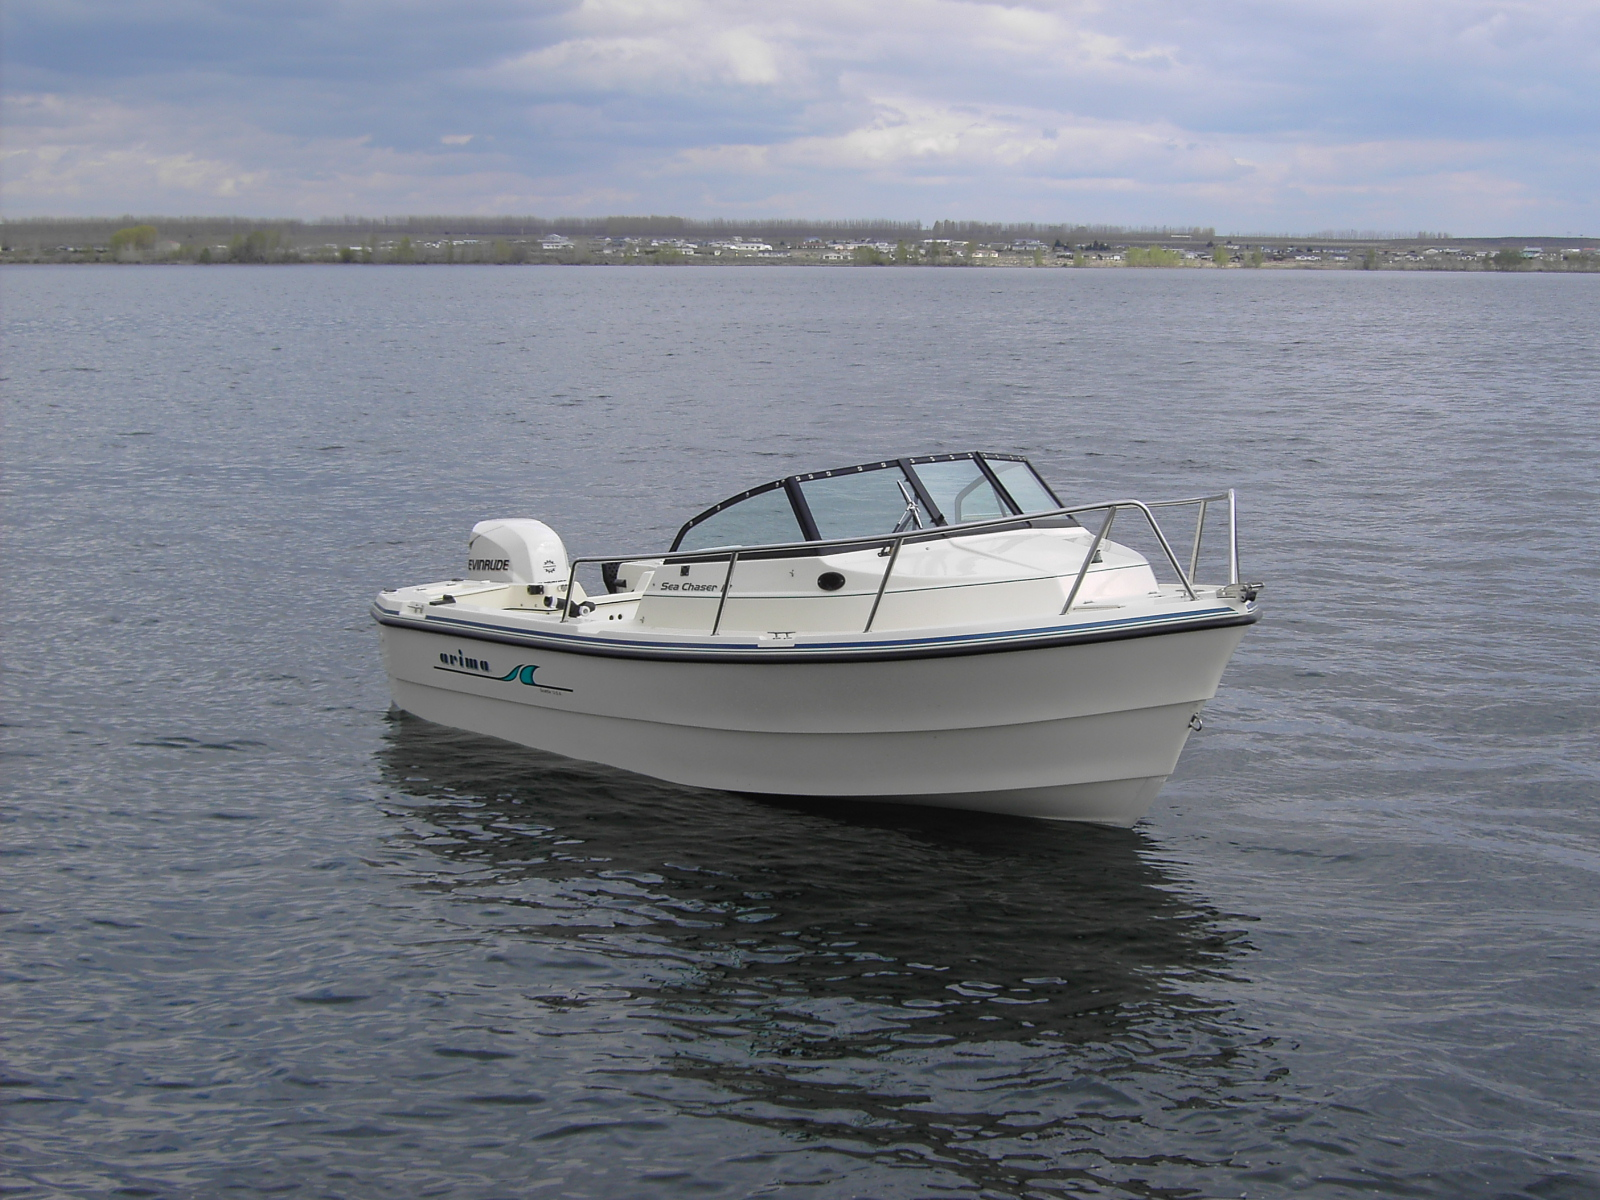 Boat Pictures